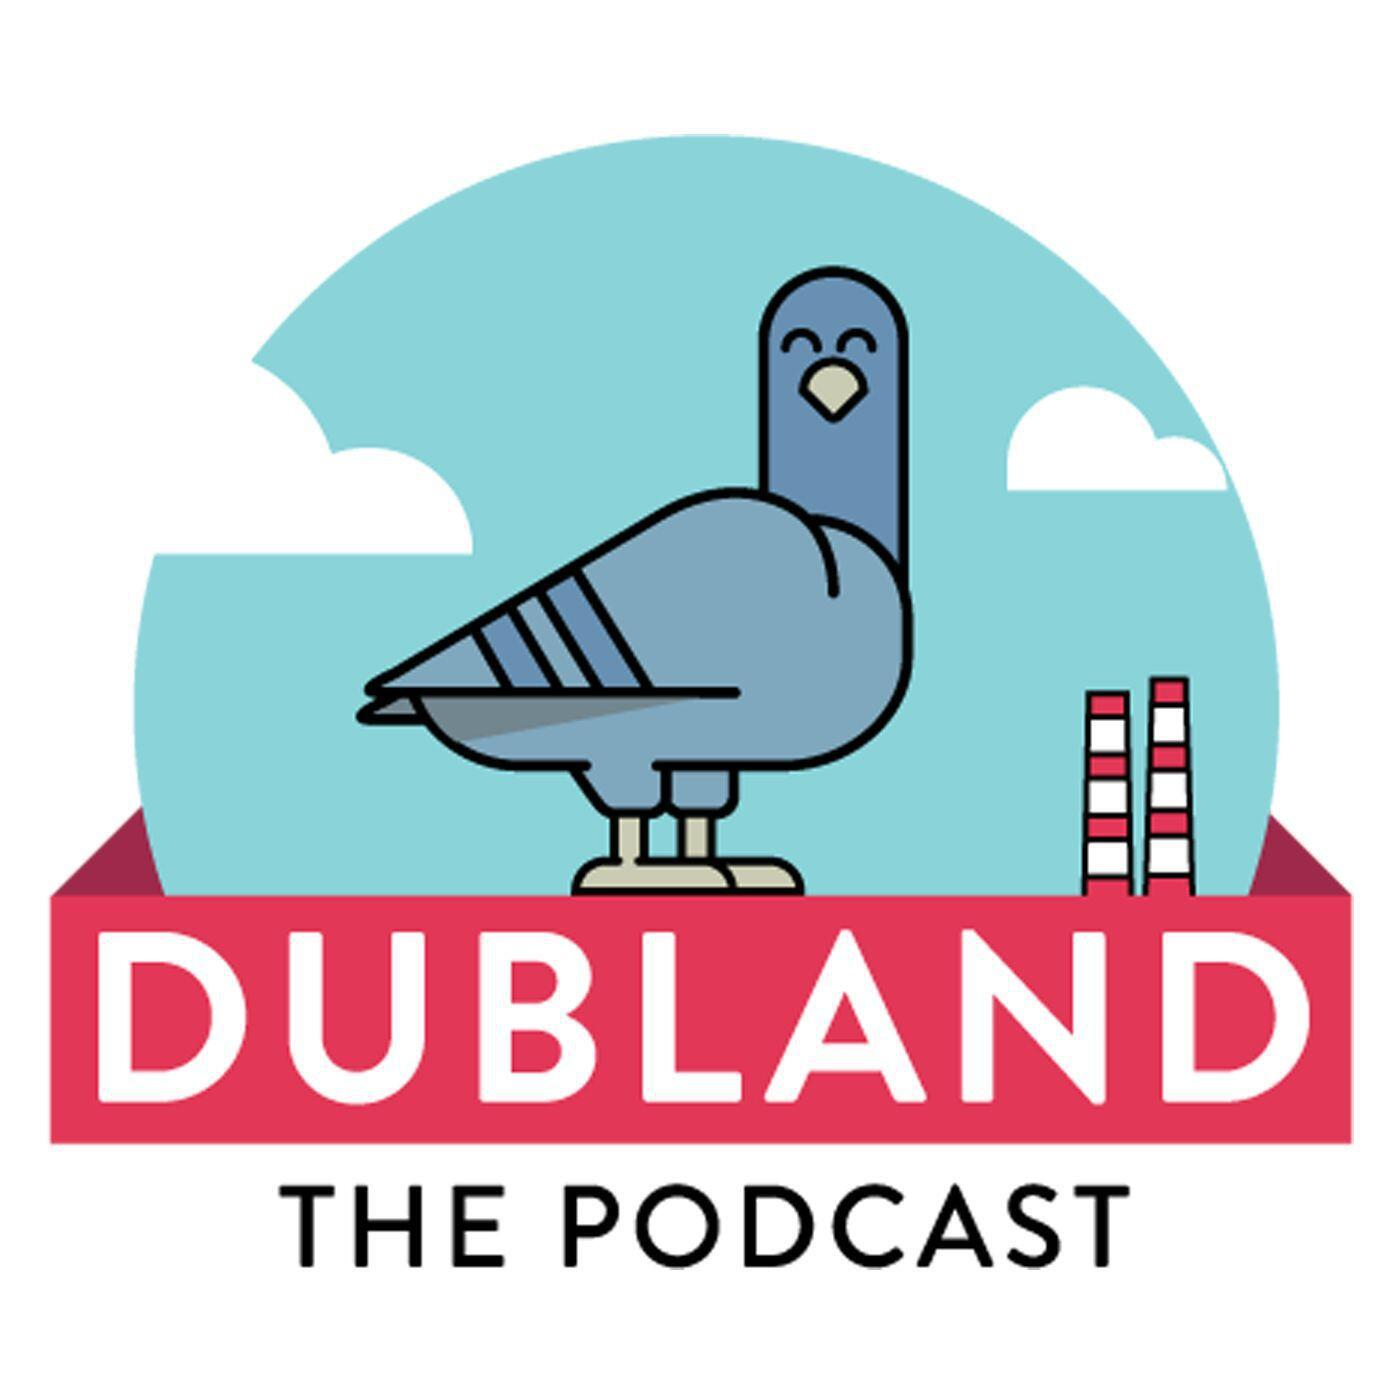 DUBLAND THE PODCAST EPISODE TEN